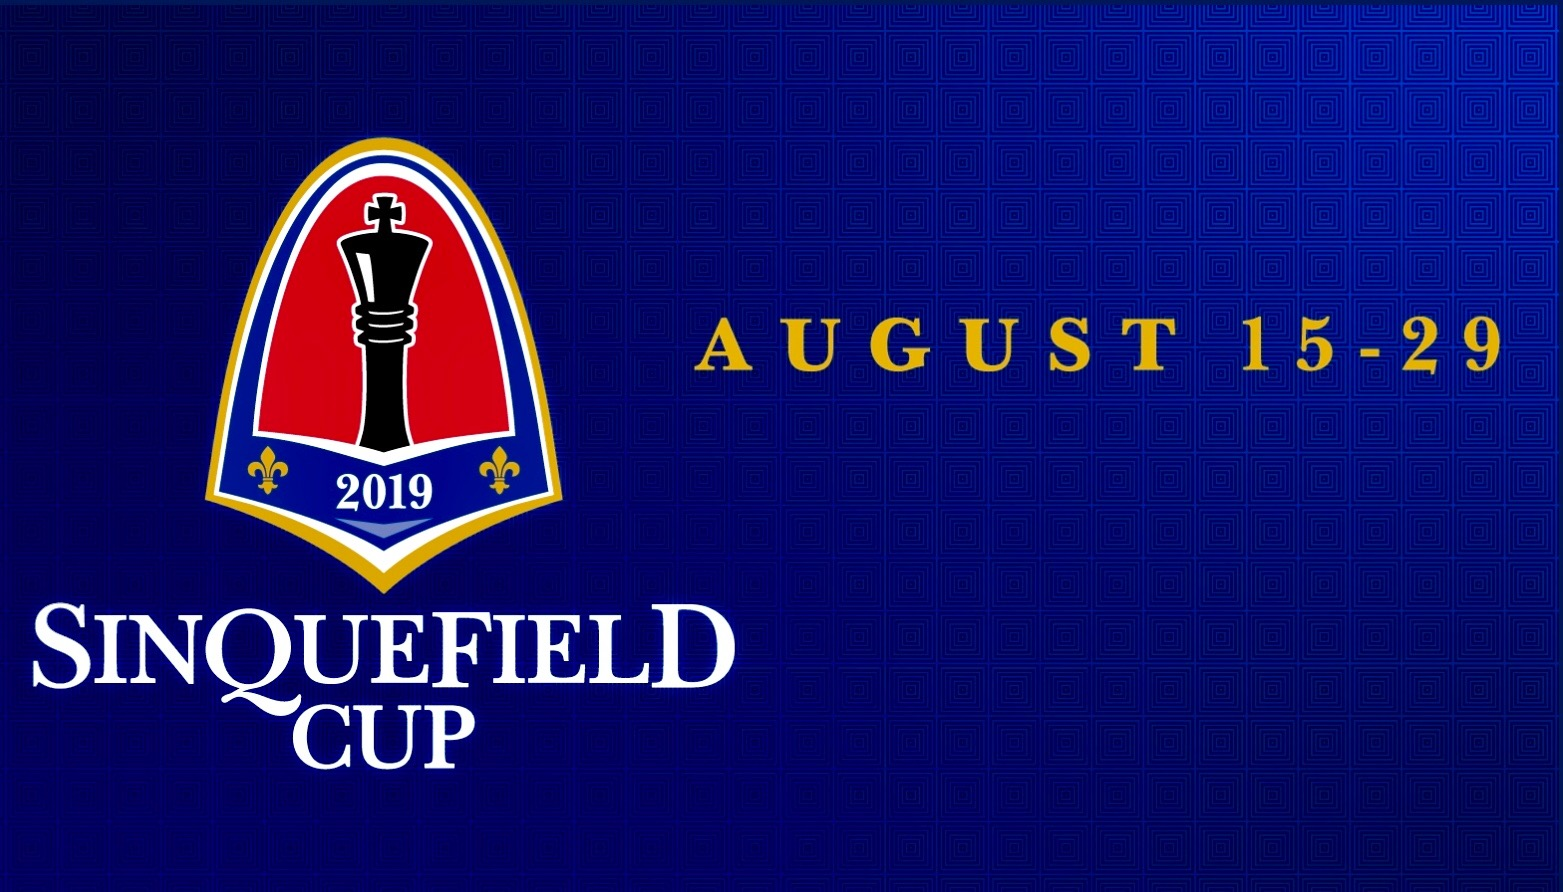 Anand continues to lead 2019 Sinquefield Cup after 2 as all games drawn